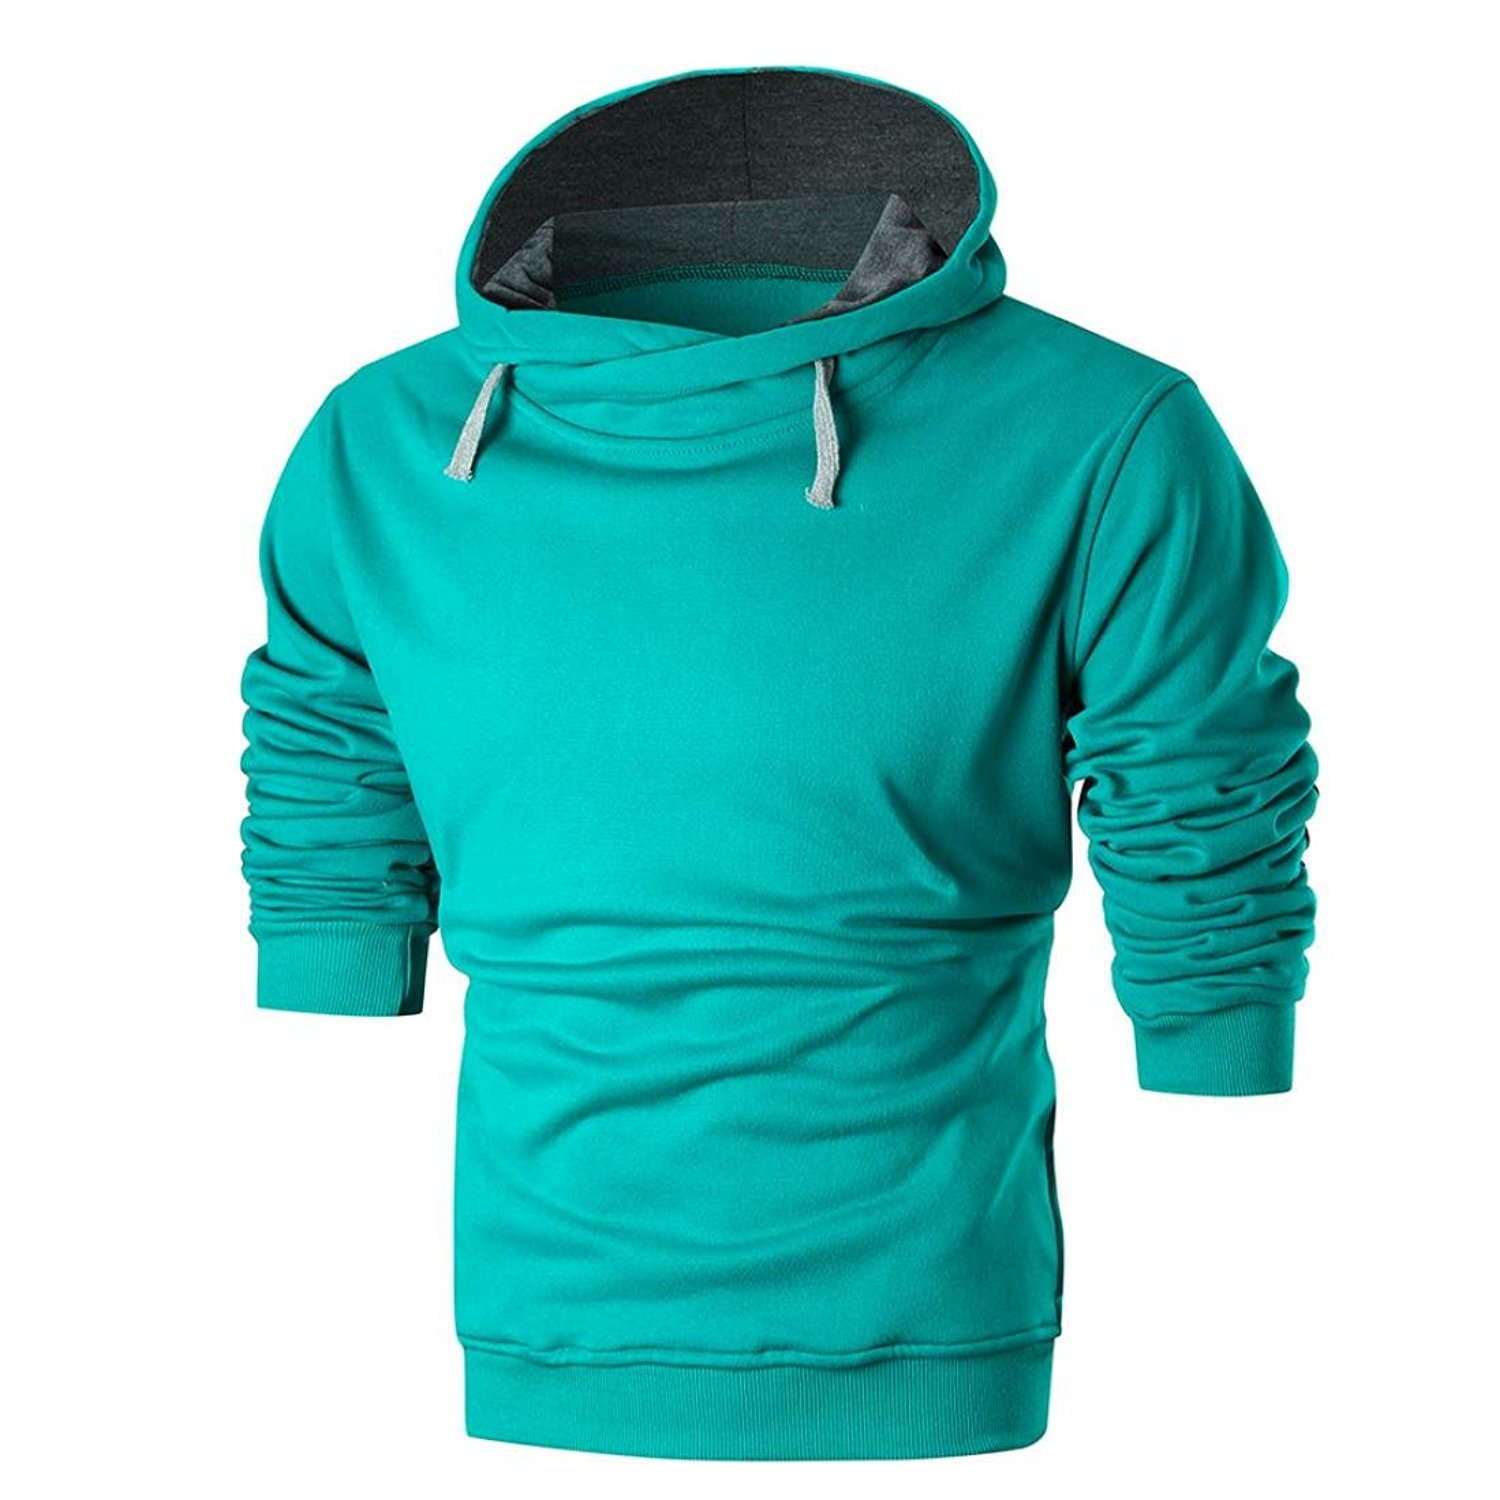 Hot Sale,Men Hoodies,Bokeley Casual Long Sleeve Pullover Slim Fit Hooded Sweatshirt